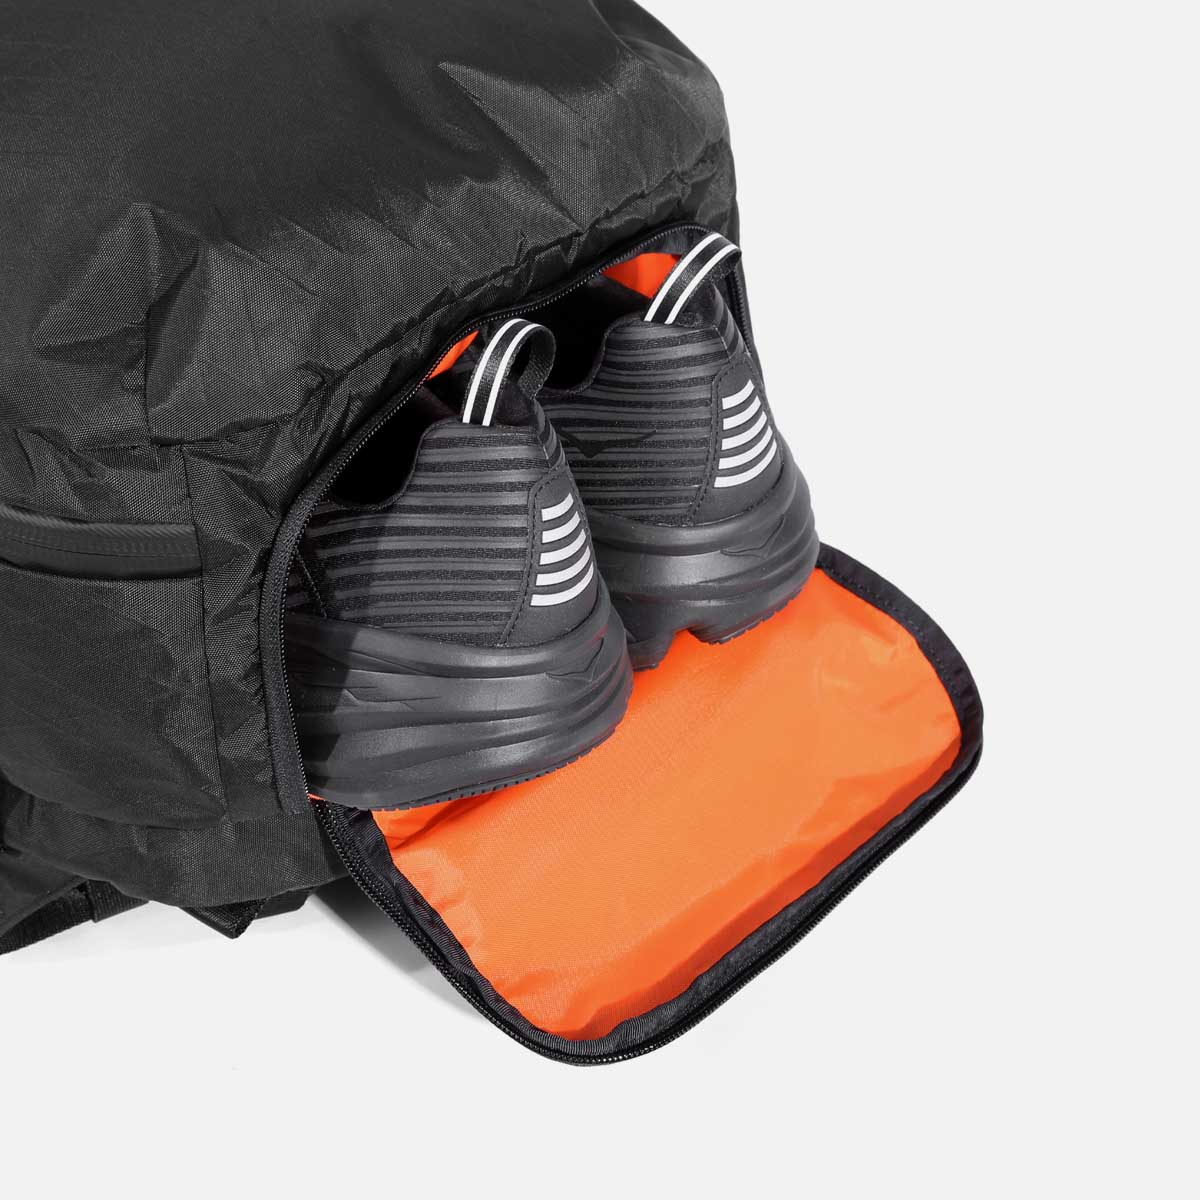 Separate compartment for shoes or dirty clothes.